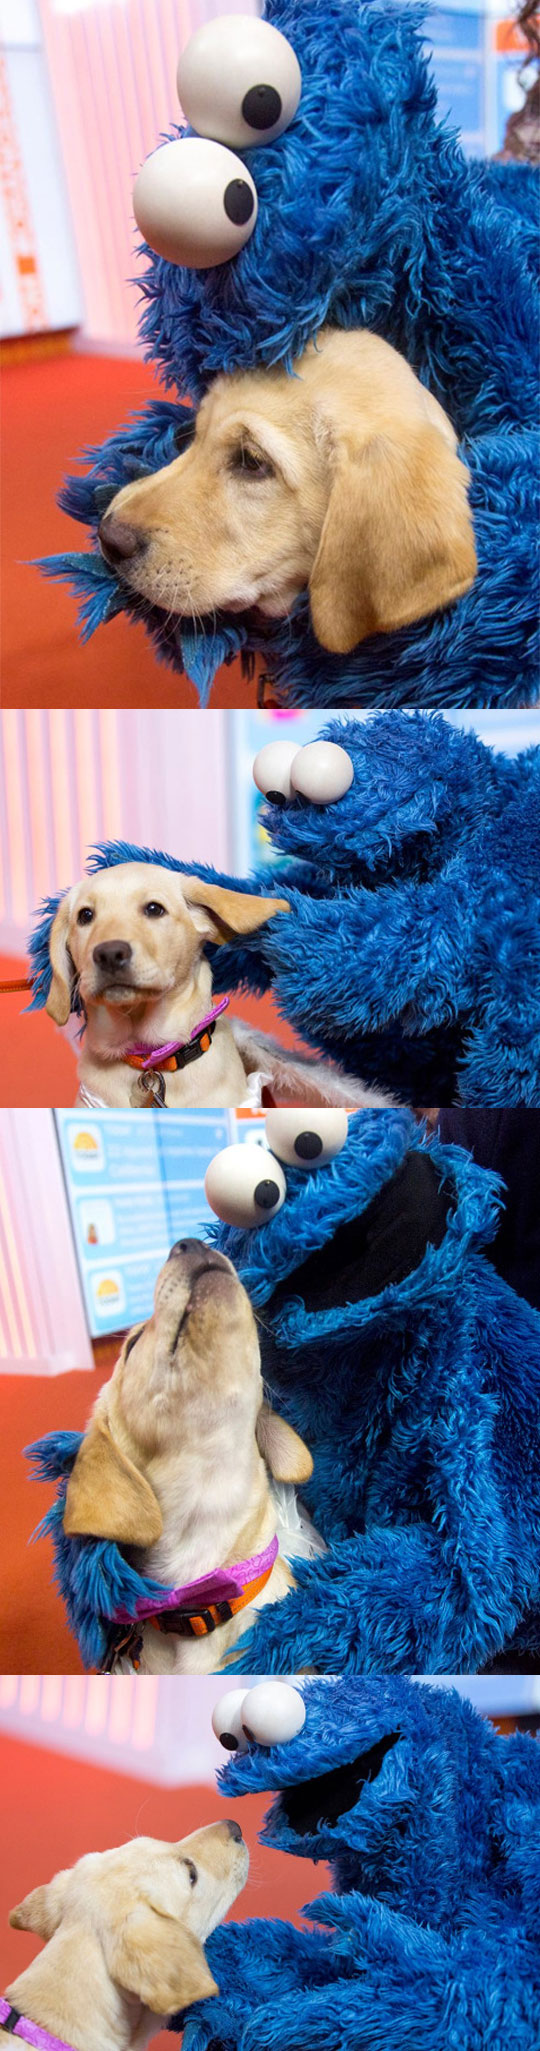 Cute Dog With Cookie Monster